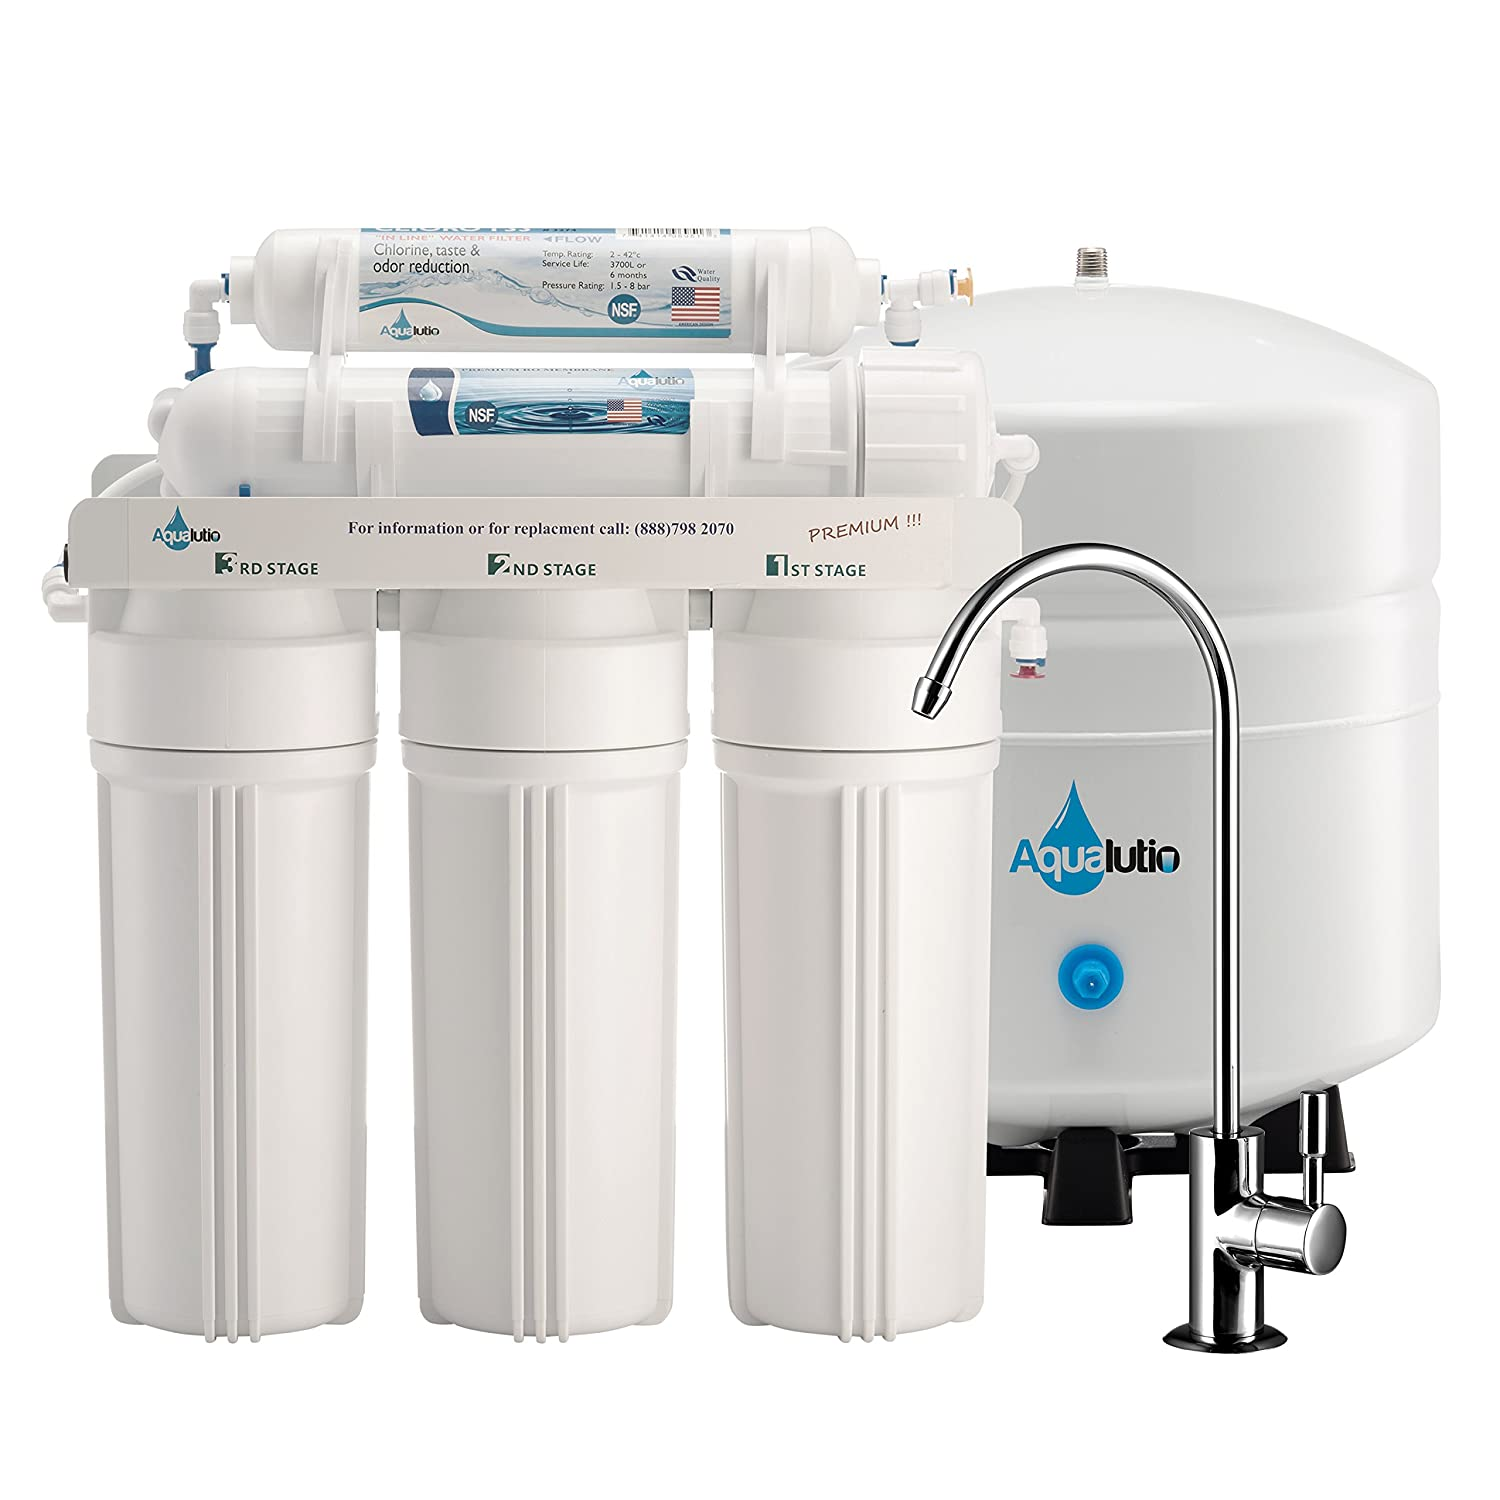 Amazon AquaLutio Premium 5 Stage Reverse Osmosis Filtration